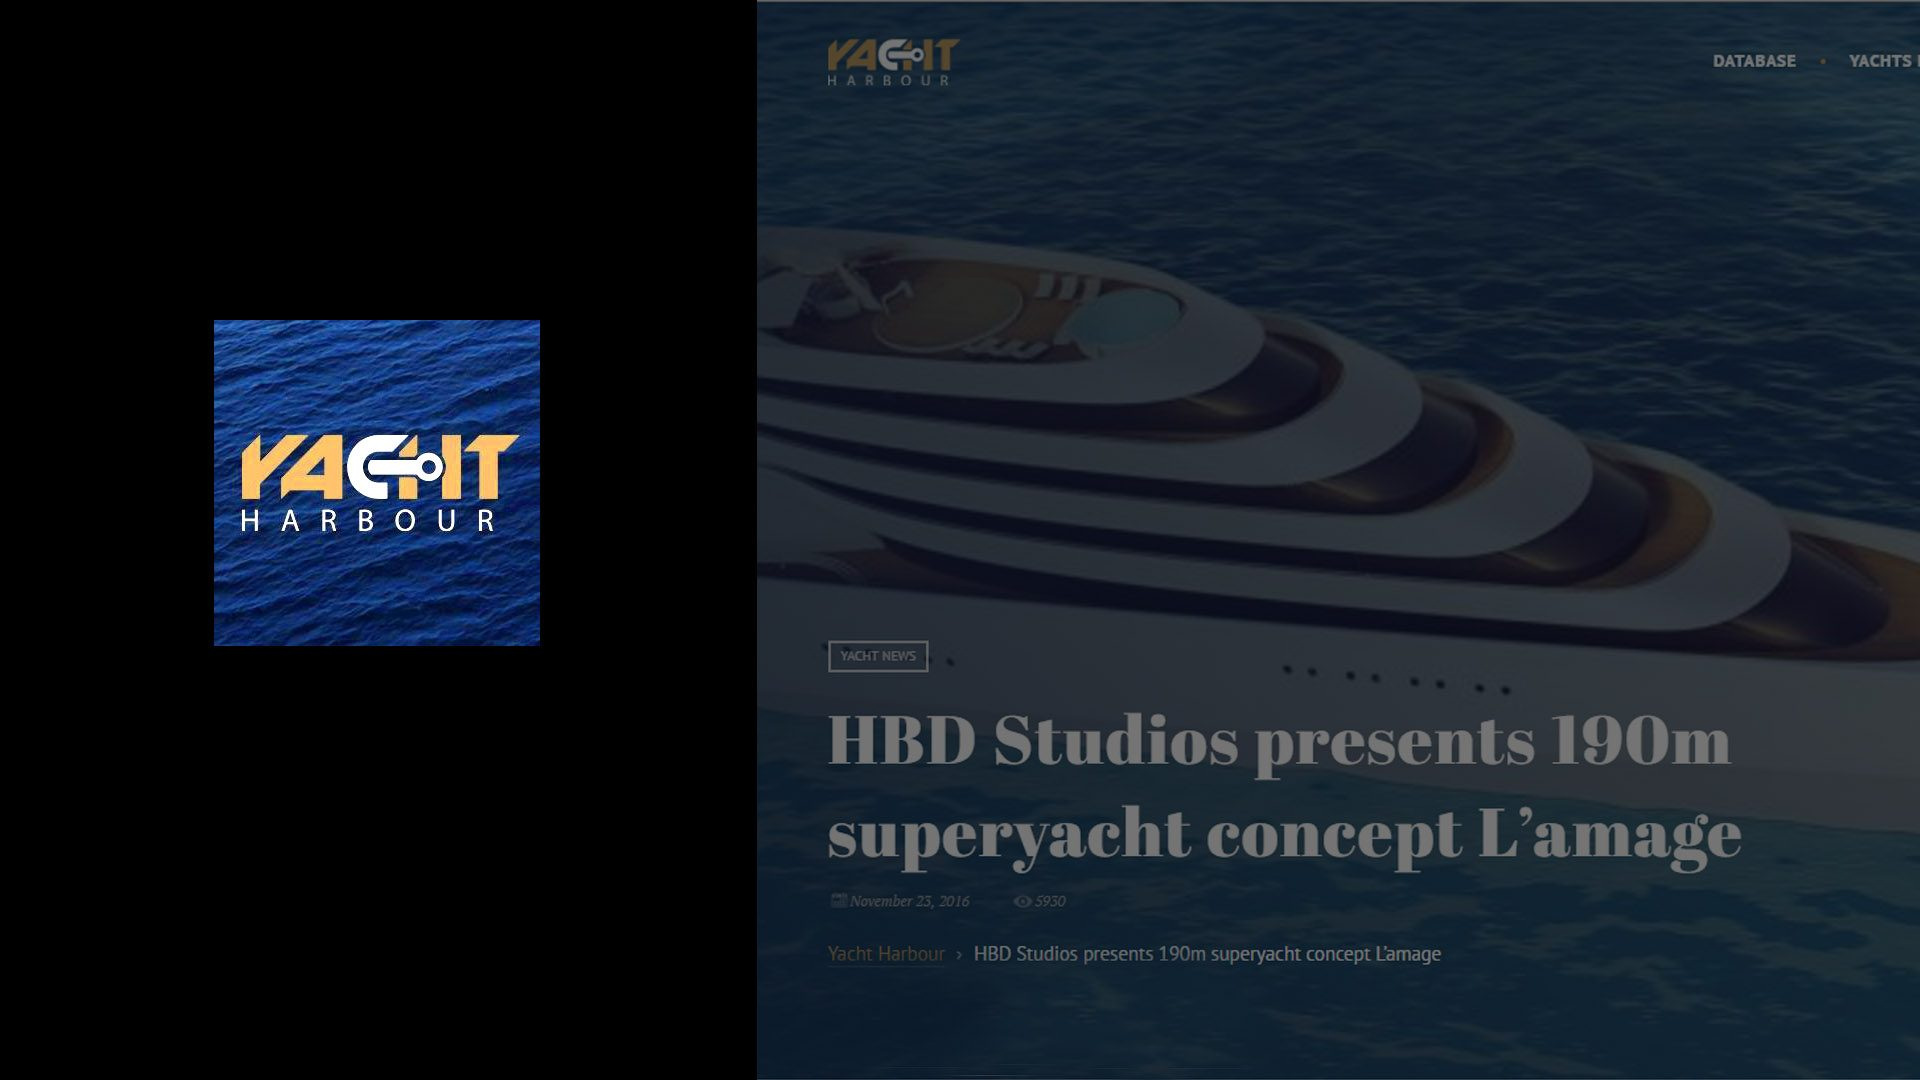 Superyacht L'Amage designed by Hamid Bekradi of HBD Studios featured on Yacht Harbour magazine